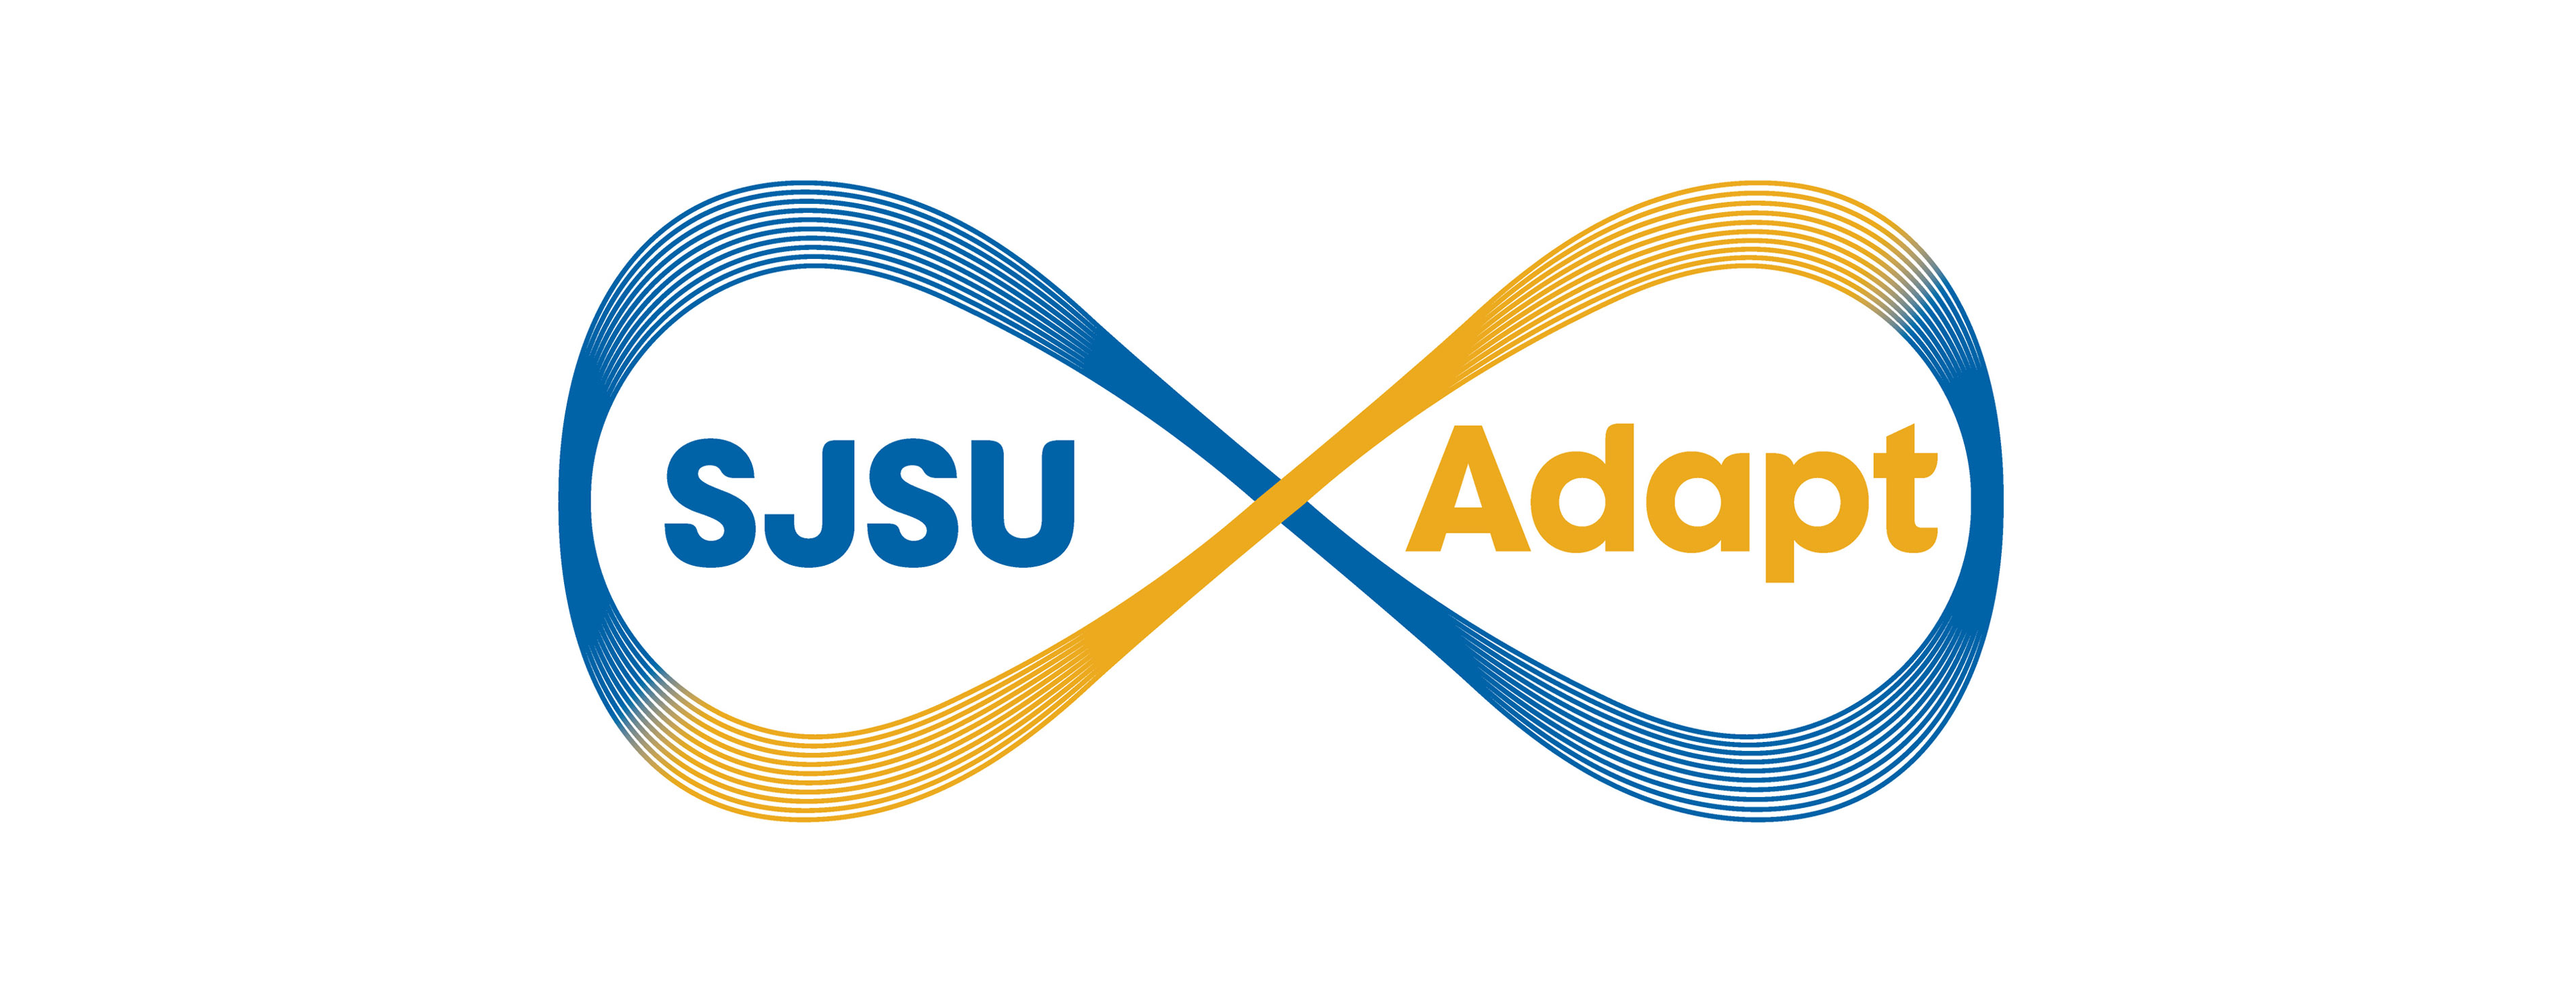 Blue and gold infinity symbol with SJSU Adapt within each loop.